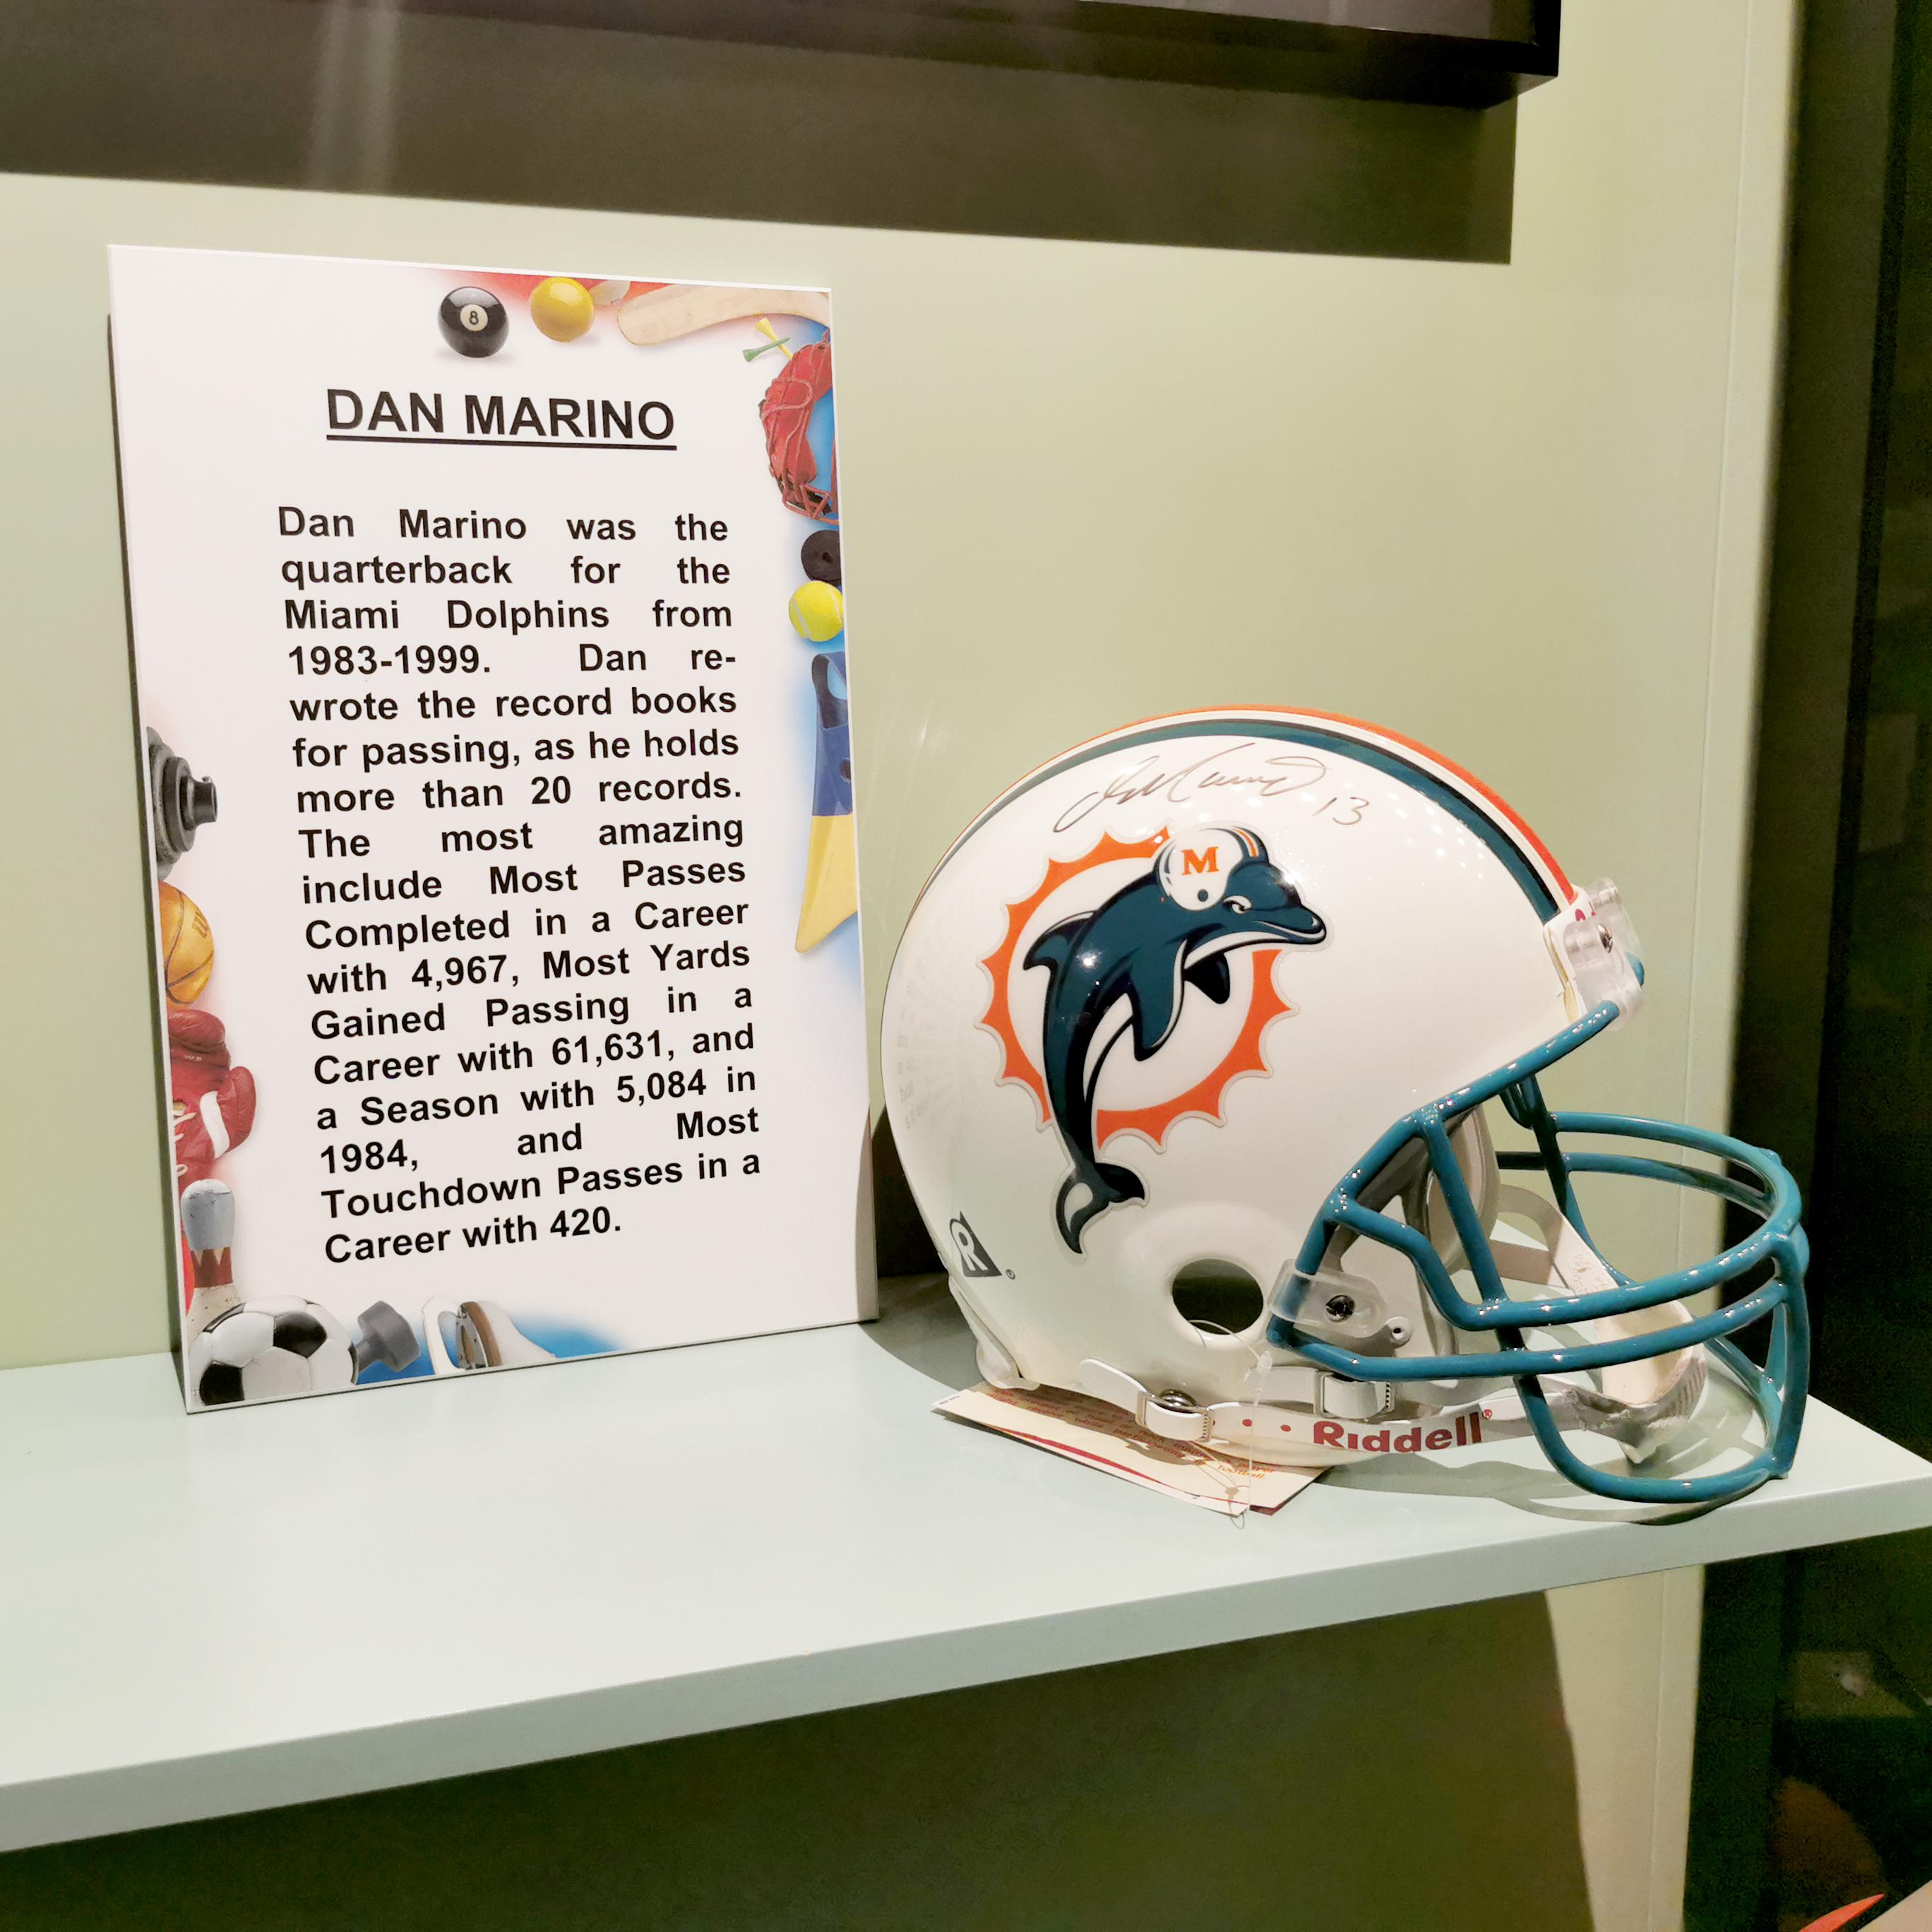 Miami Dolphins Helmet Signed Dan Marino Guinness World Records Museum Display